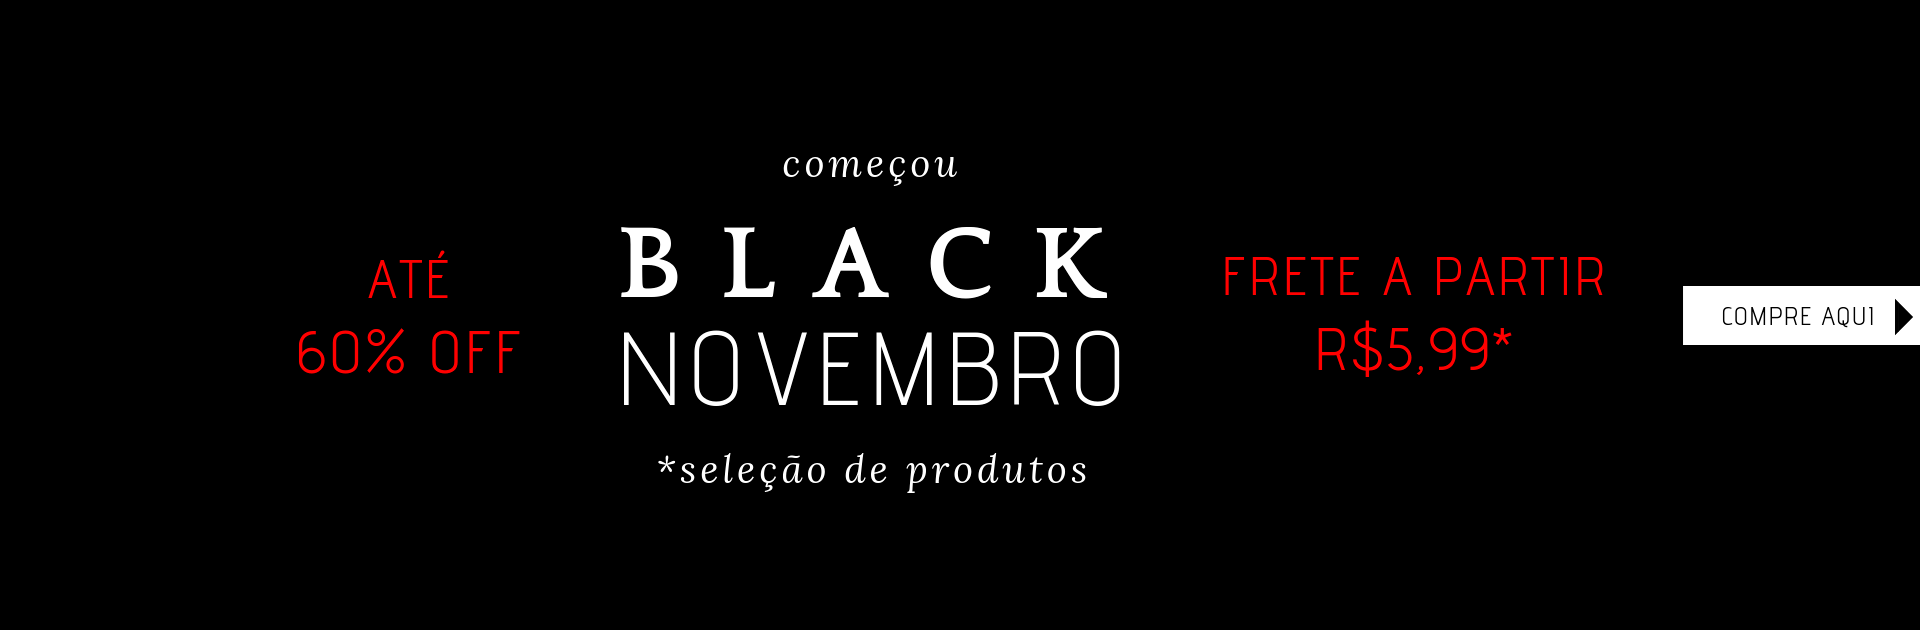 Black friday Moda evangélica